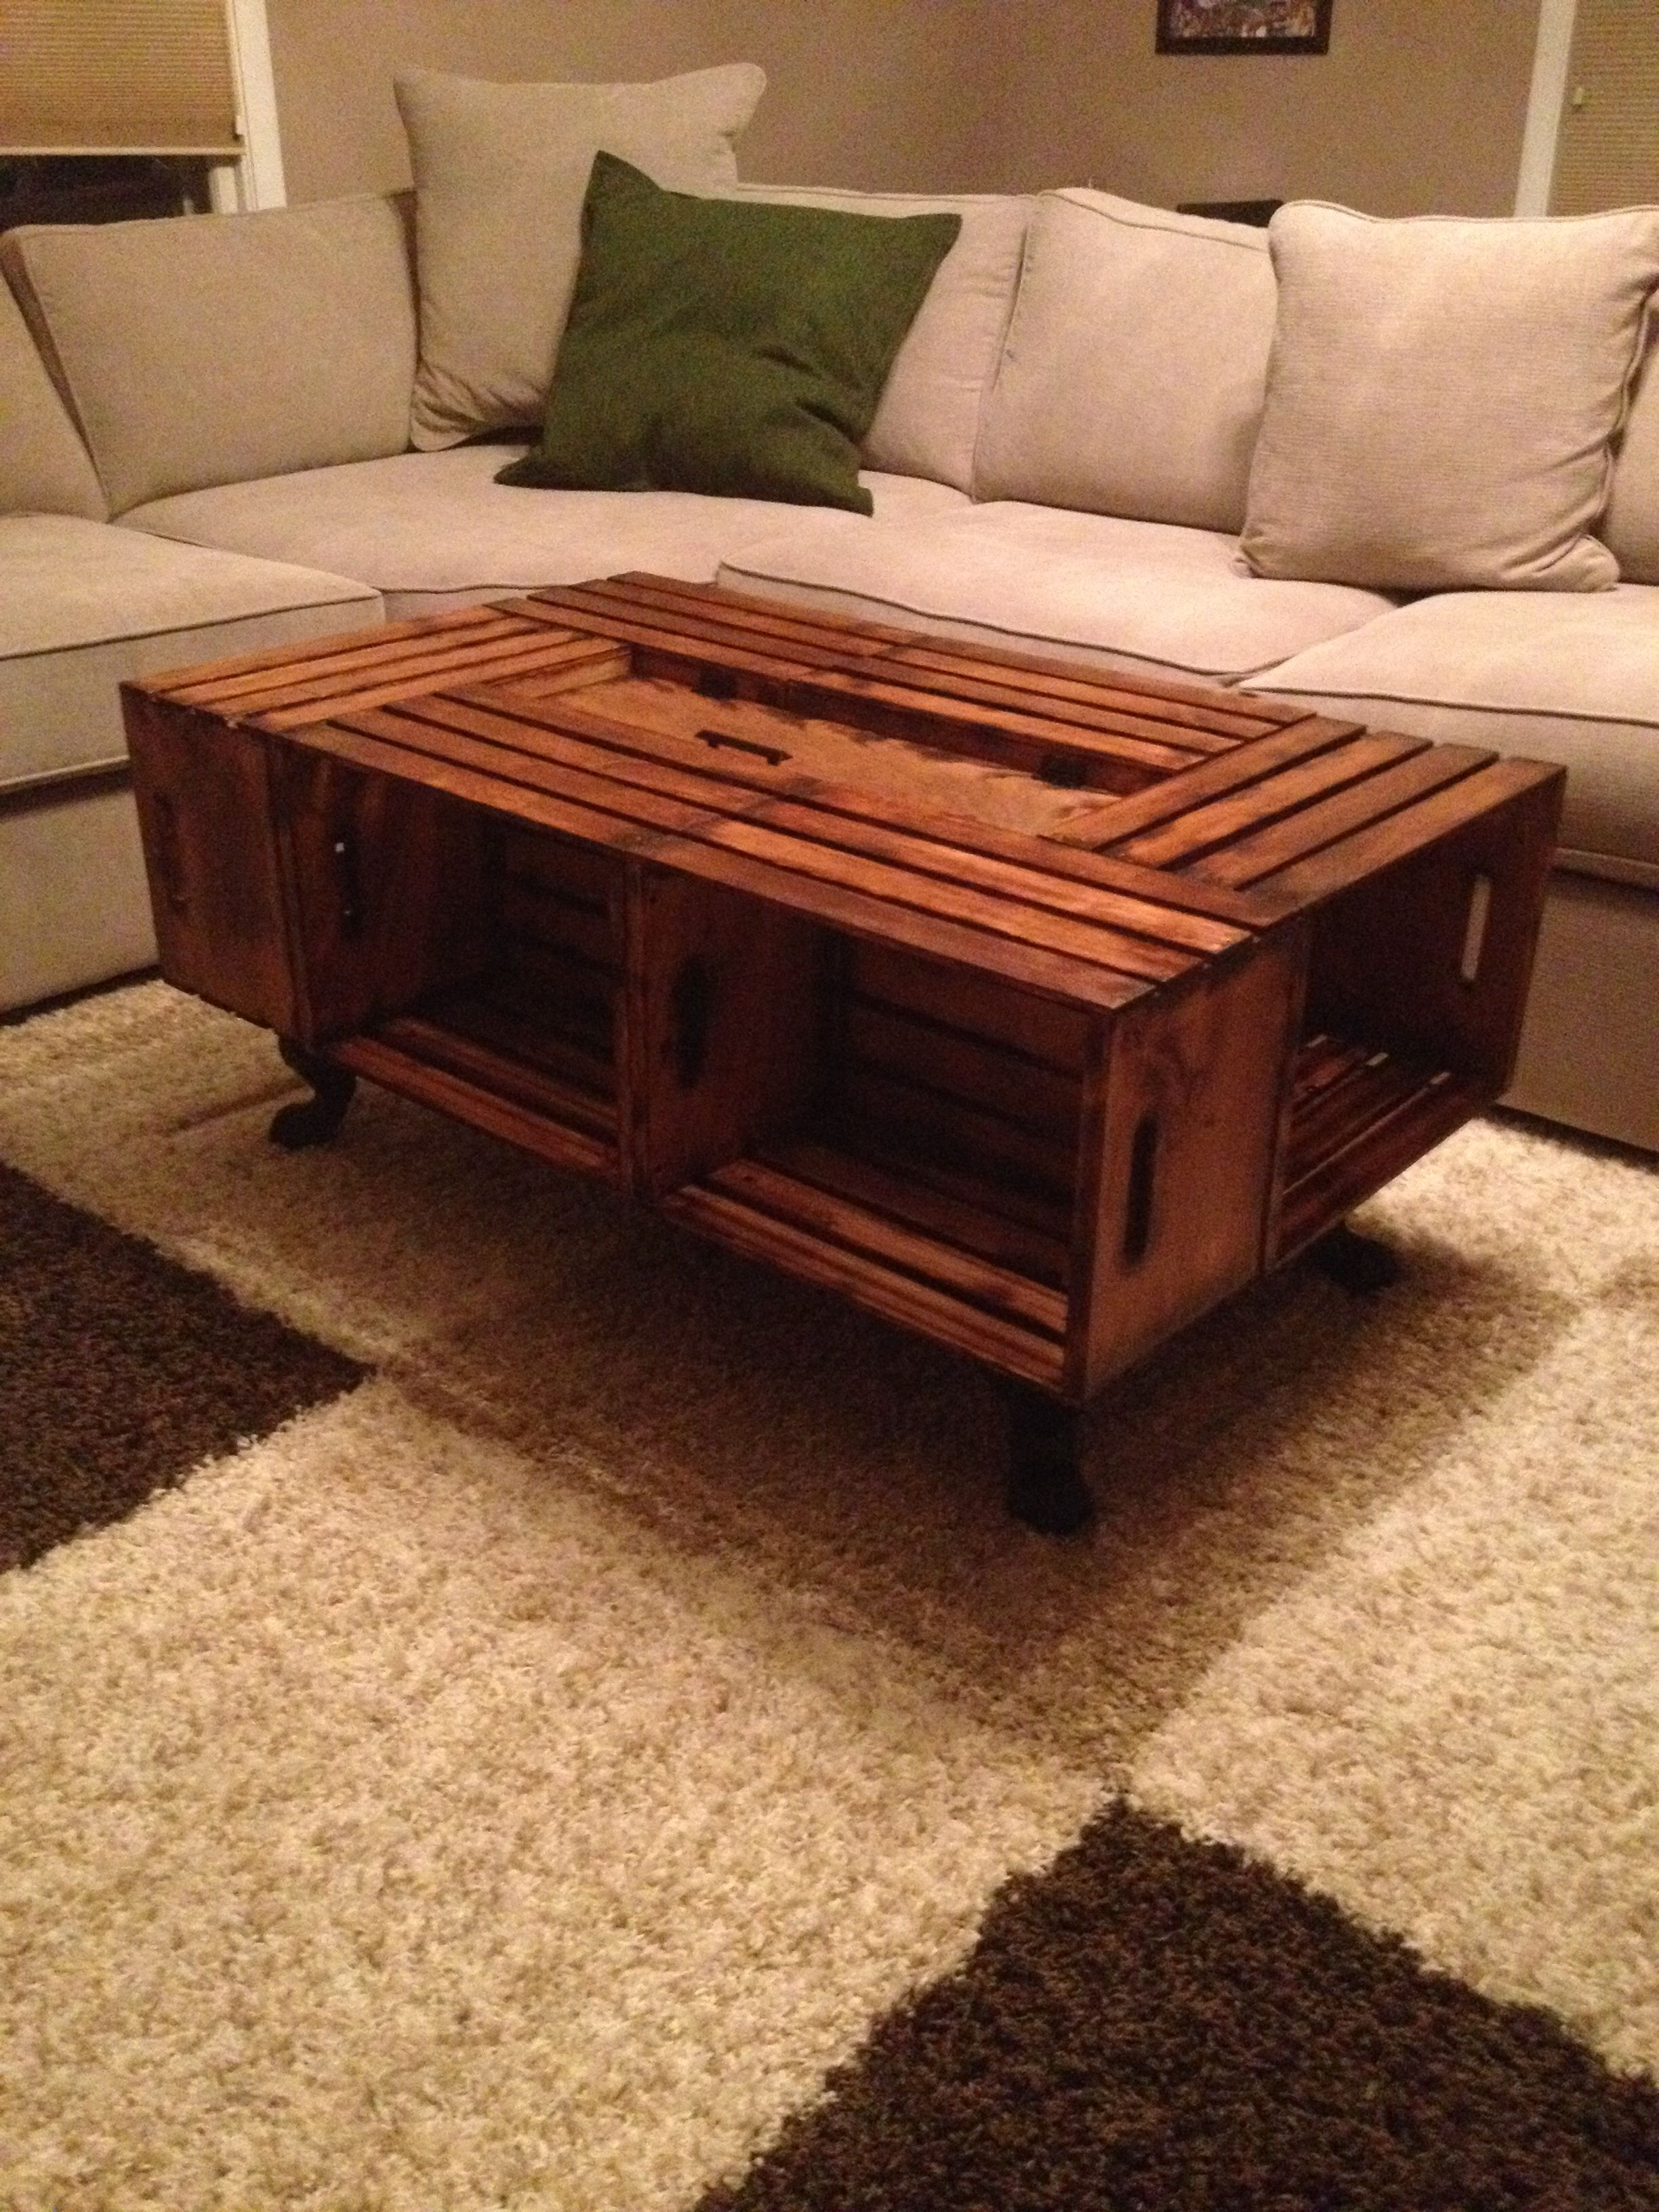 Finished Wine Crate Coffee table, All told it was